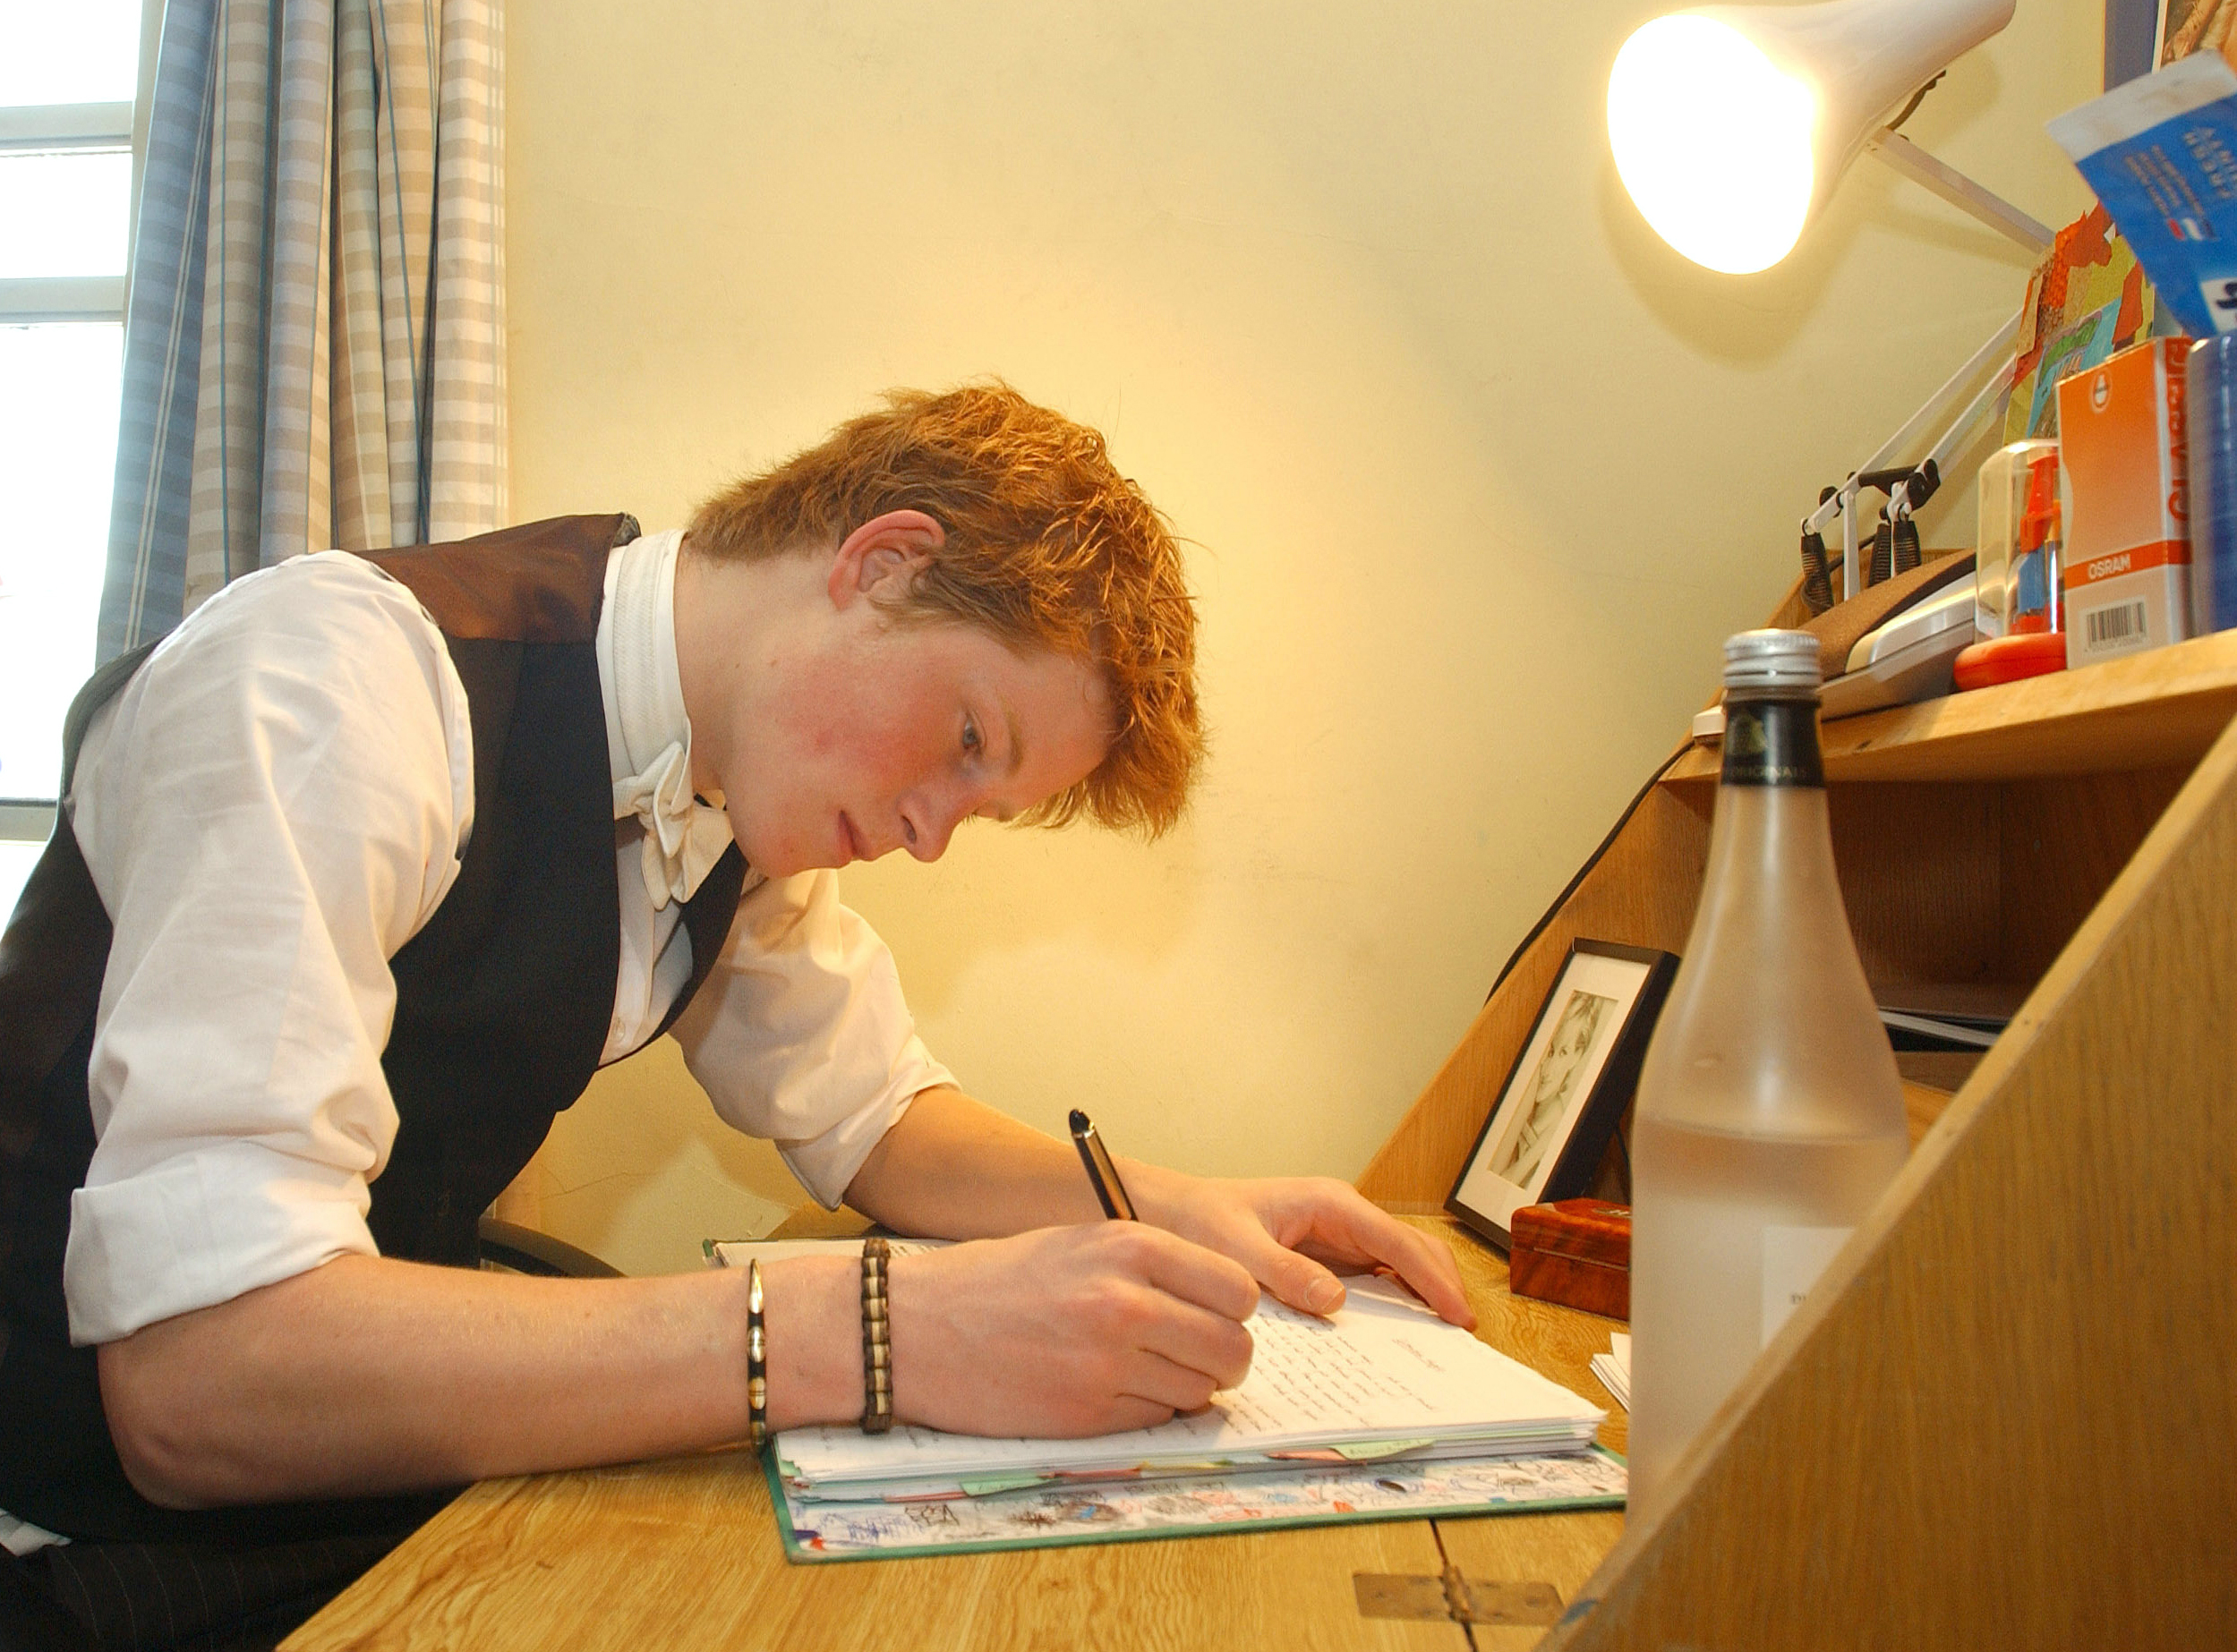 Prince Harry writes at his desk in his room at Eton College boarding school on June 7, 2003 in Berkshire, England.